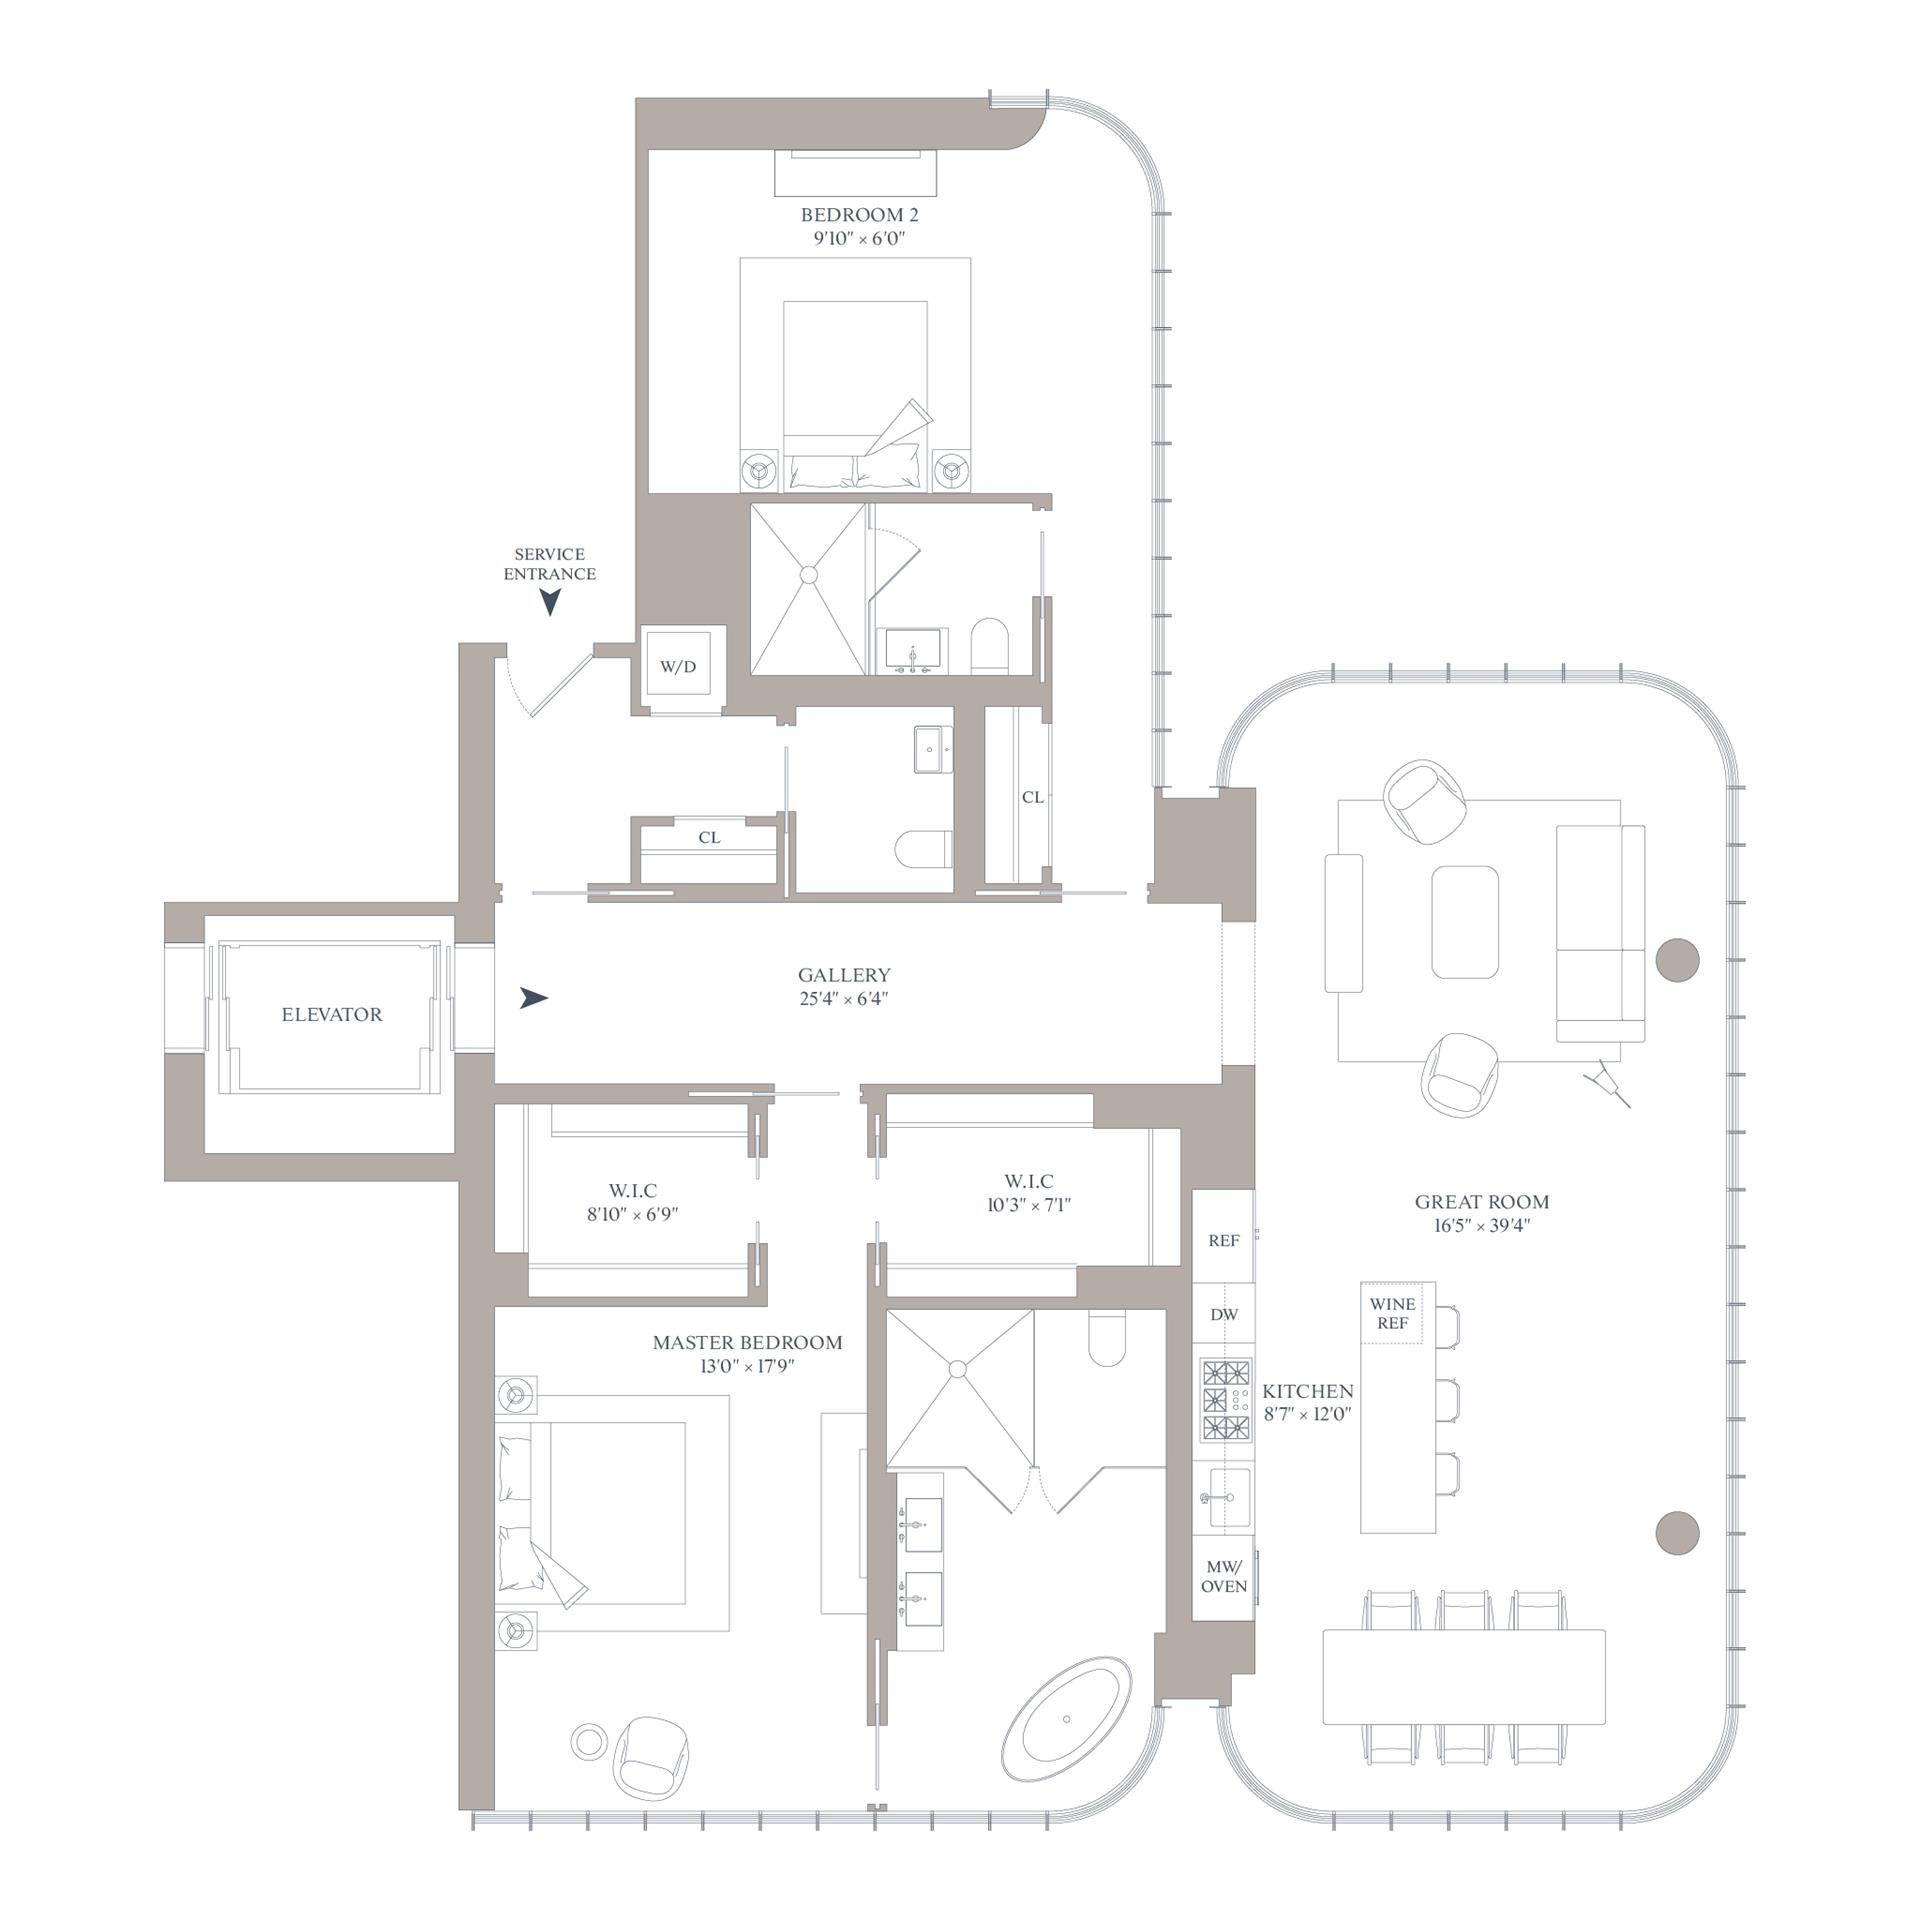 Floor plan of 565 Broome St, S26B - SoHo - Nolita, New York